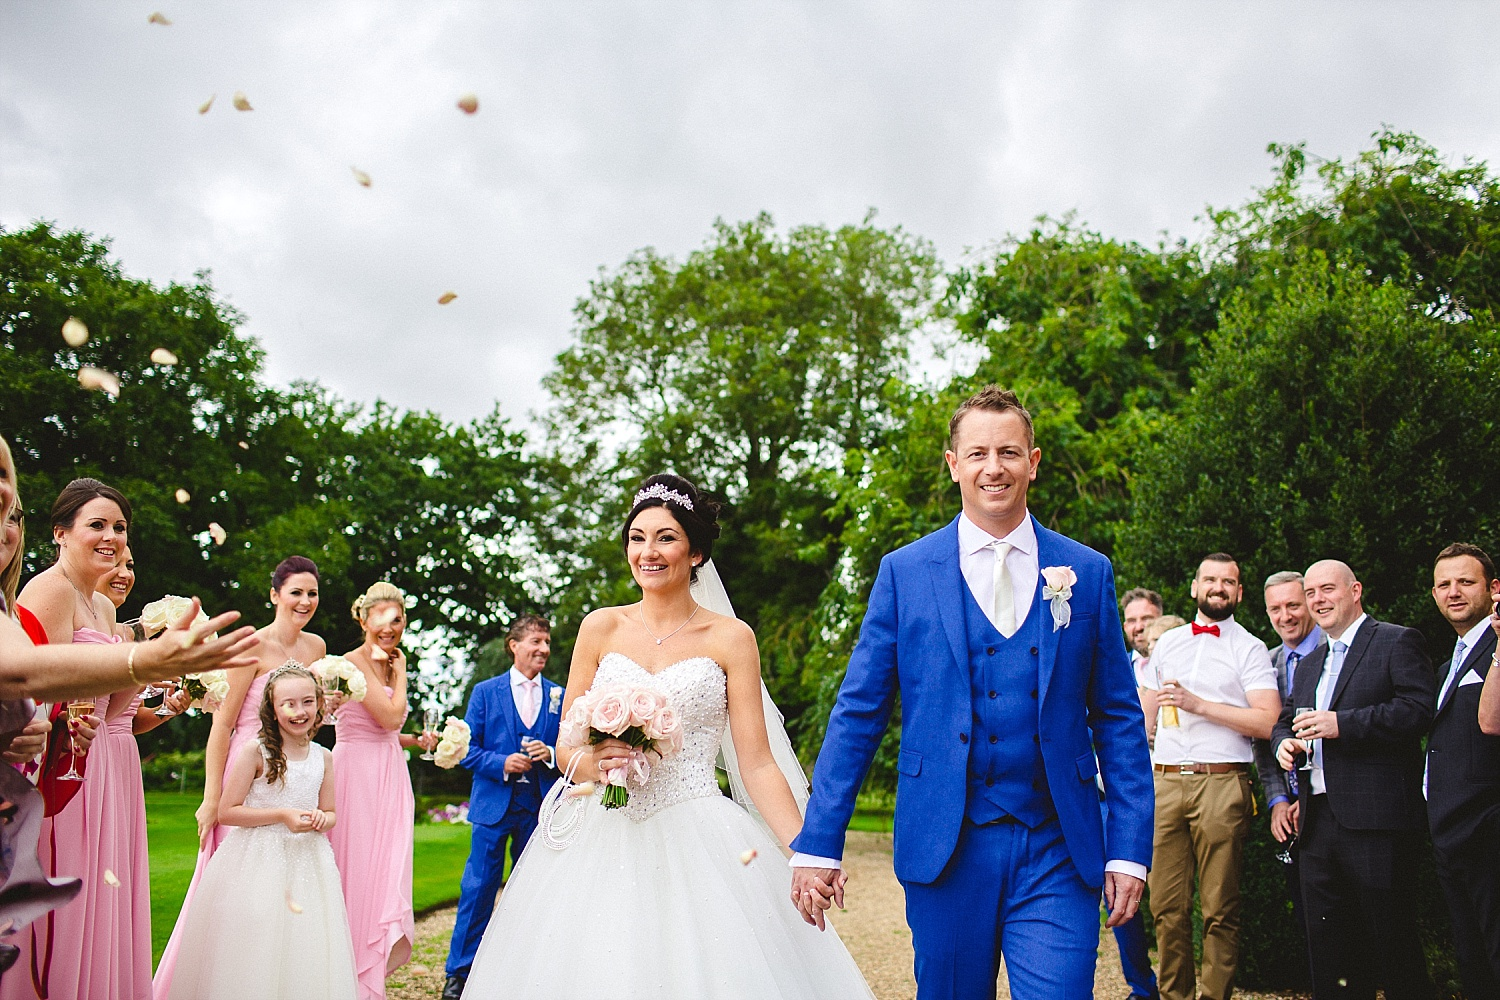 Gosfield_Hall_Essex_Wedding_Photographer_0060.jpg